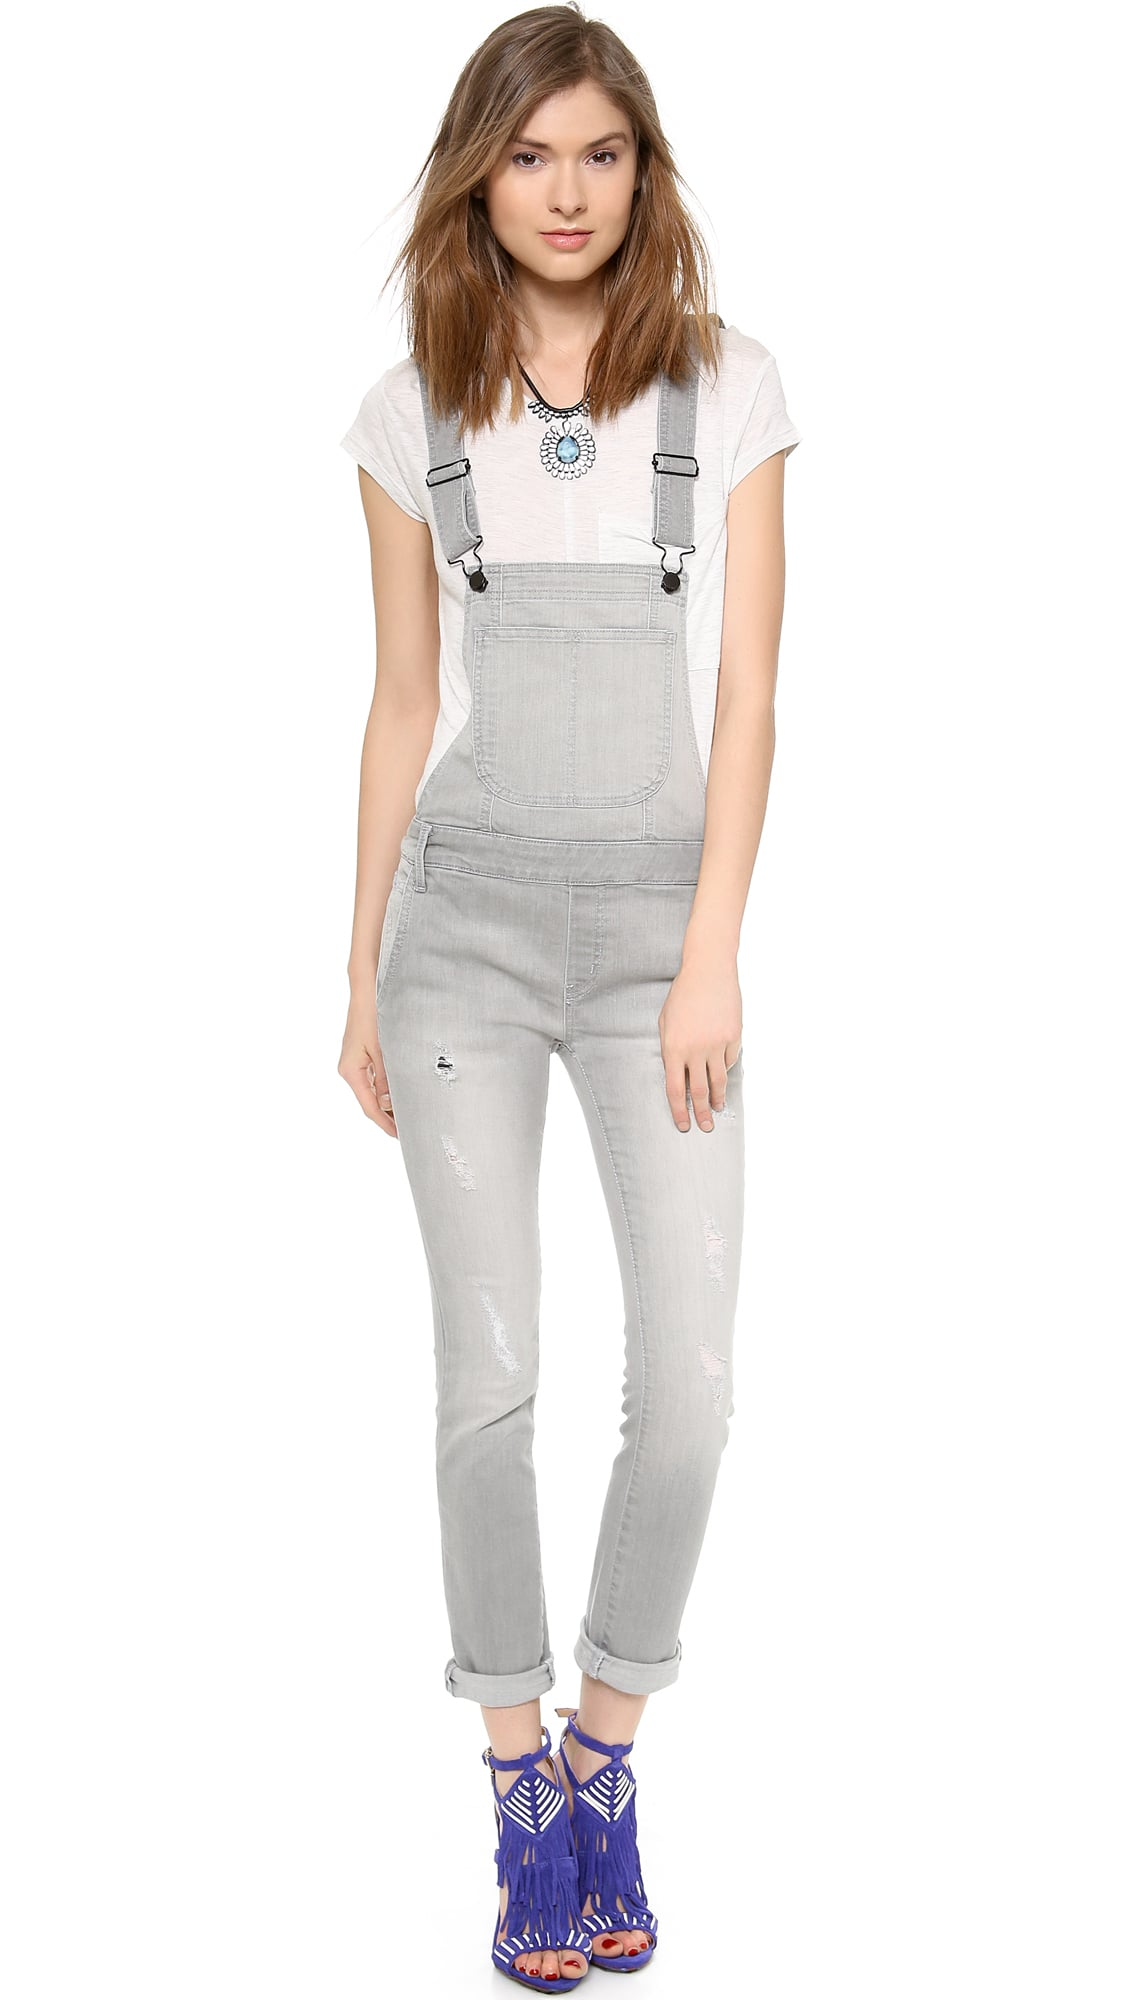 Black Orchid gray skinny overalls ($174)